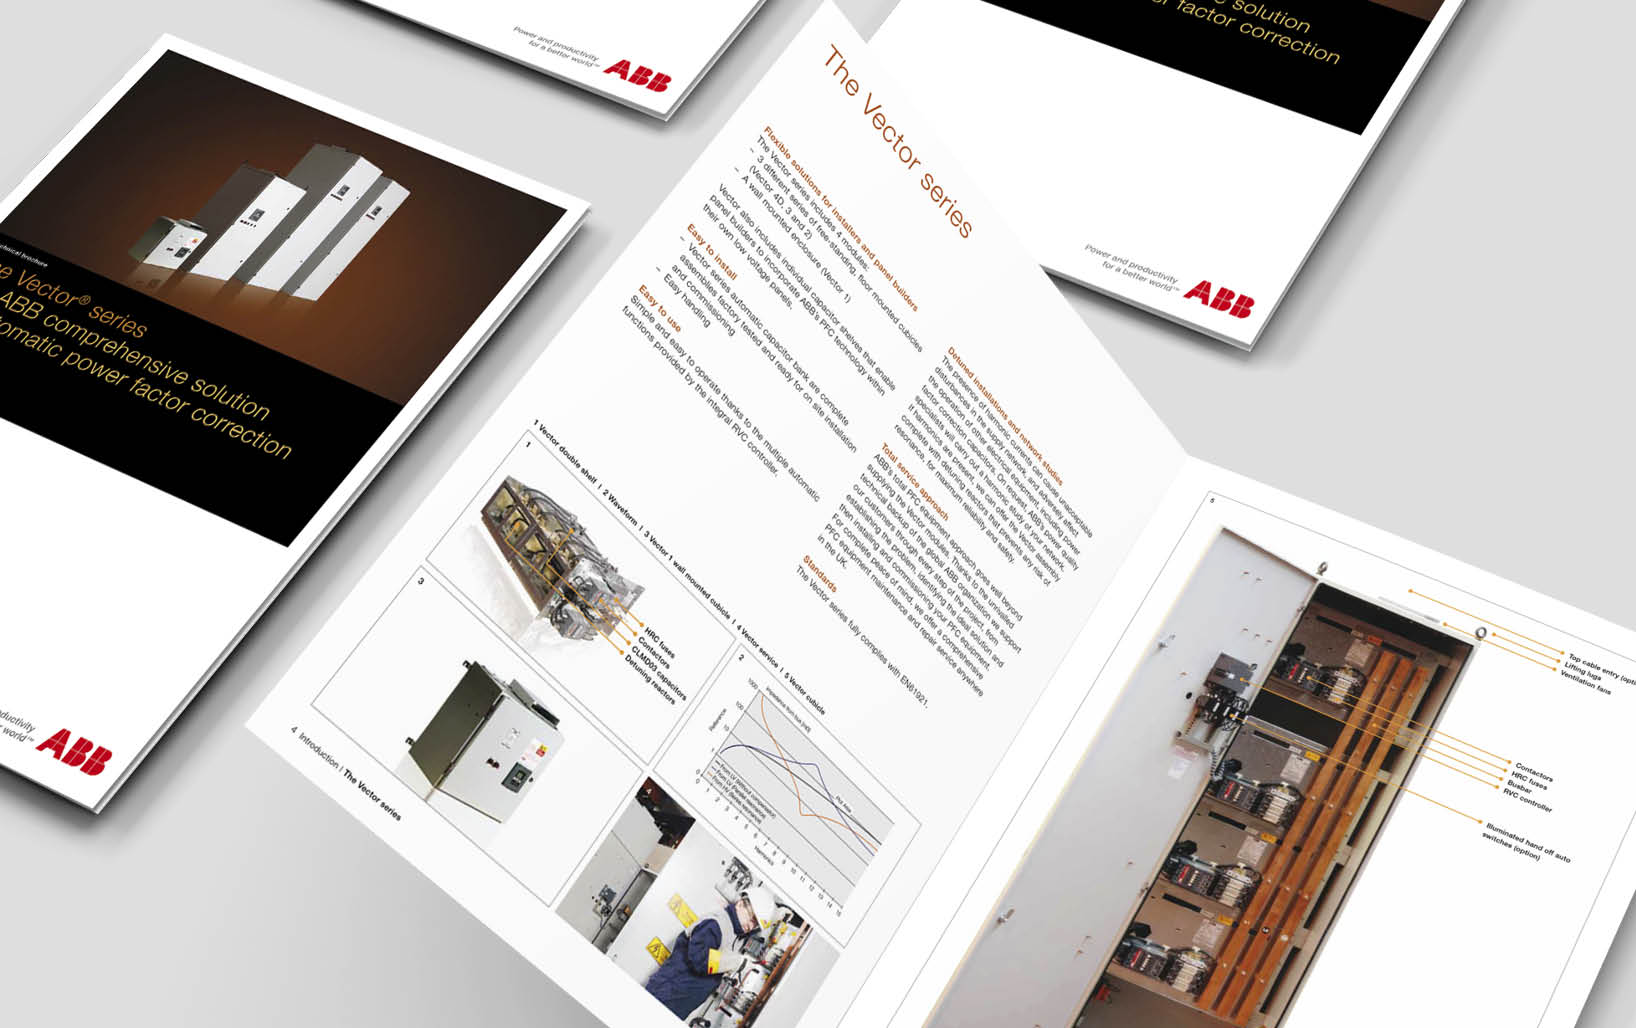 ABB Product Brochure Design